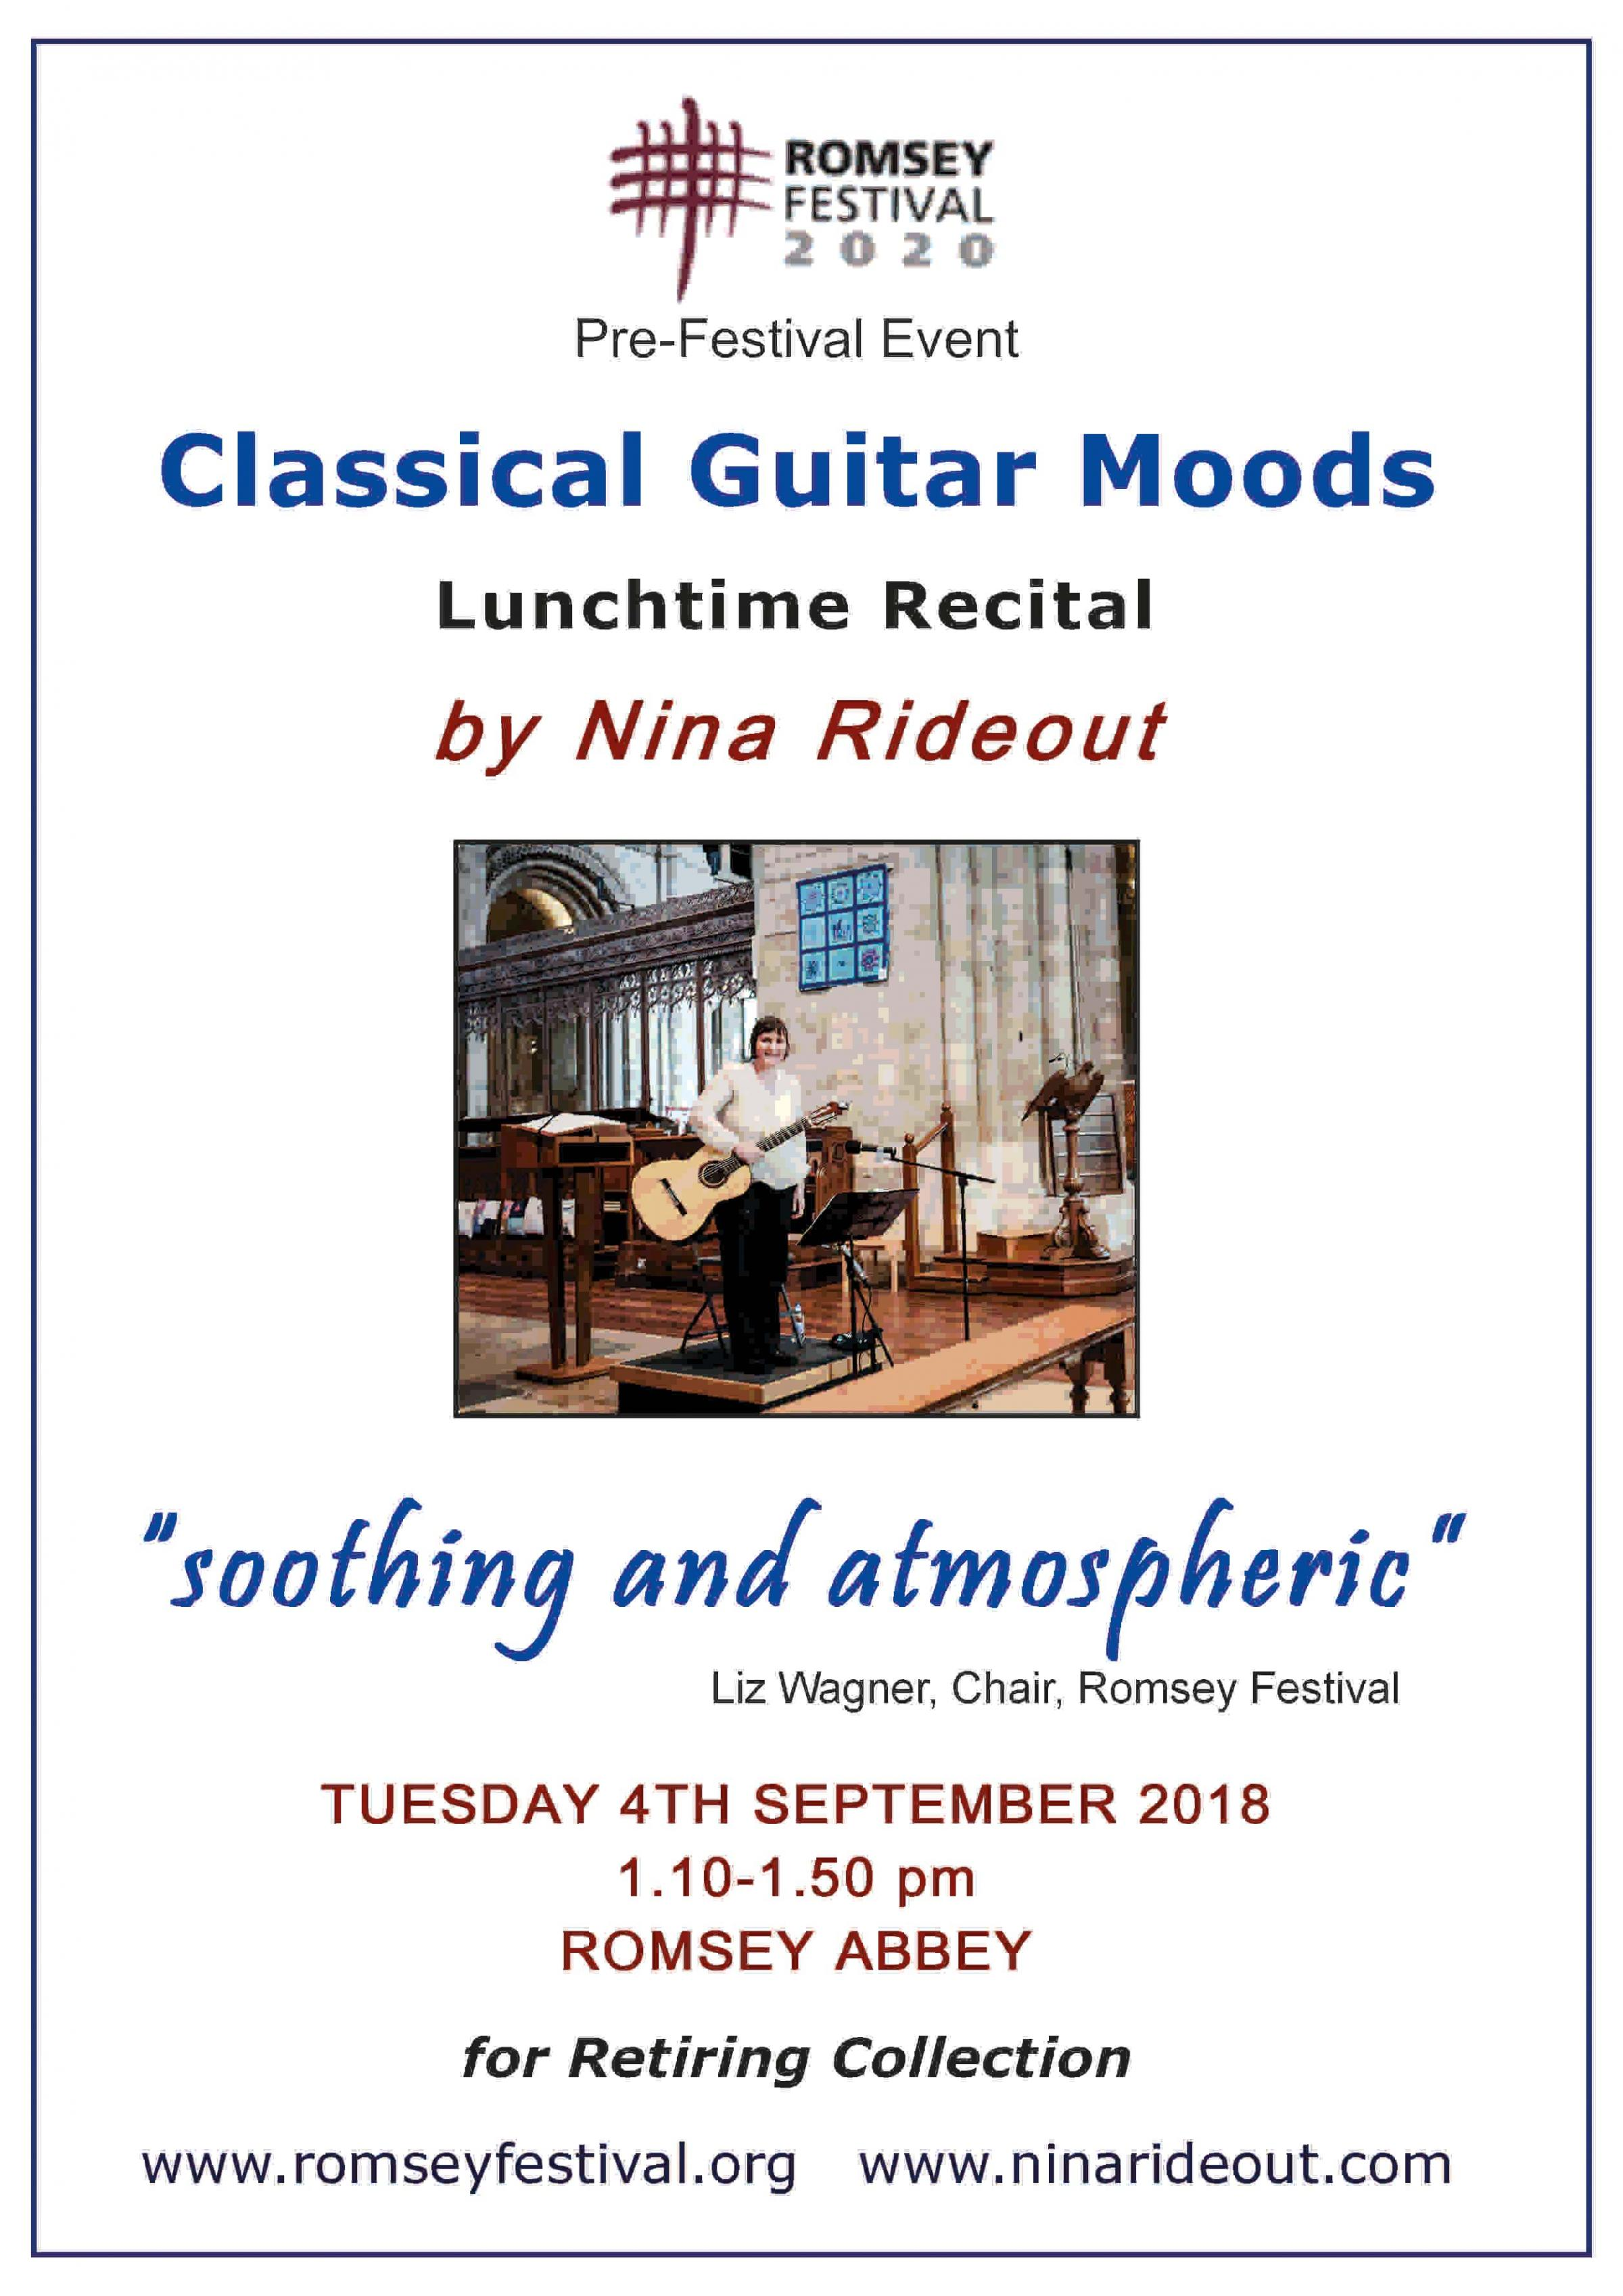 Classical Guitar Moods - lunchtime recital